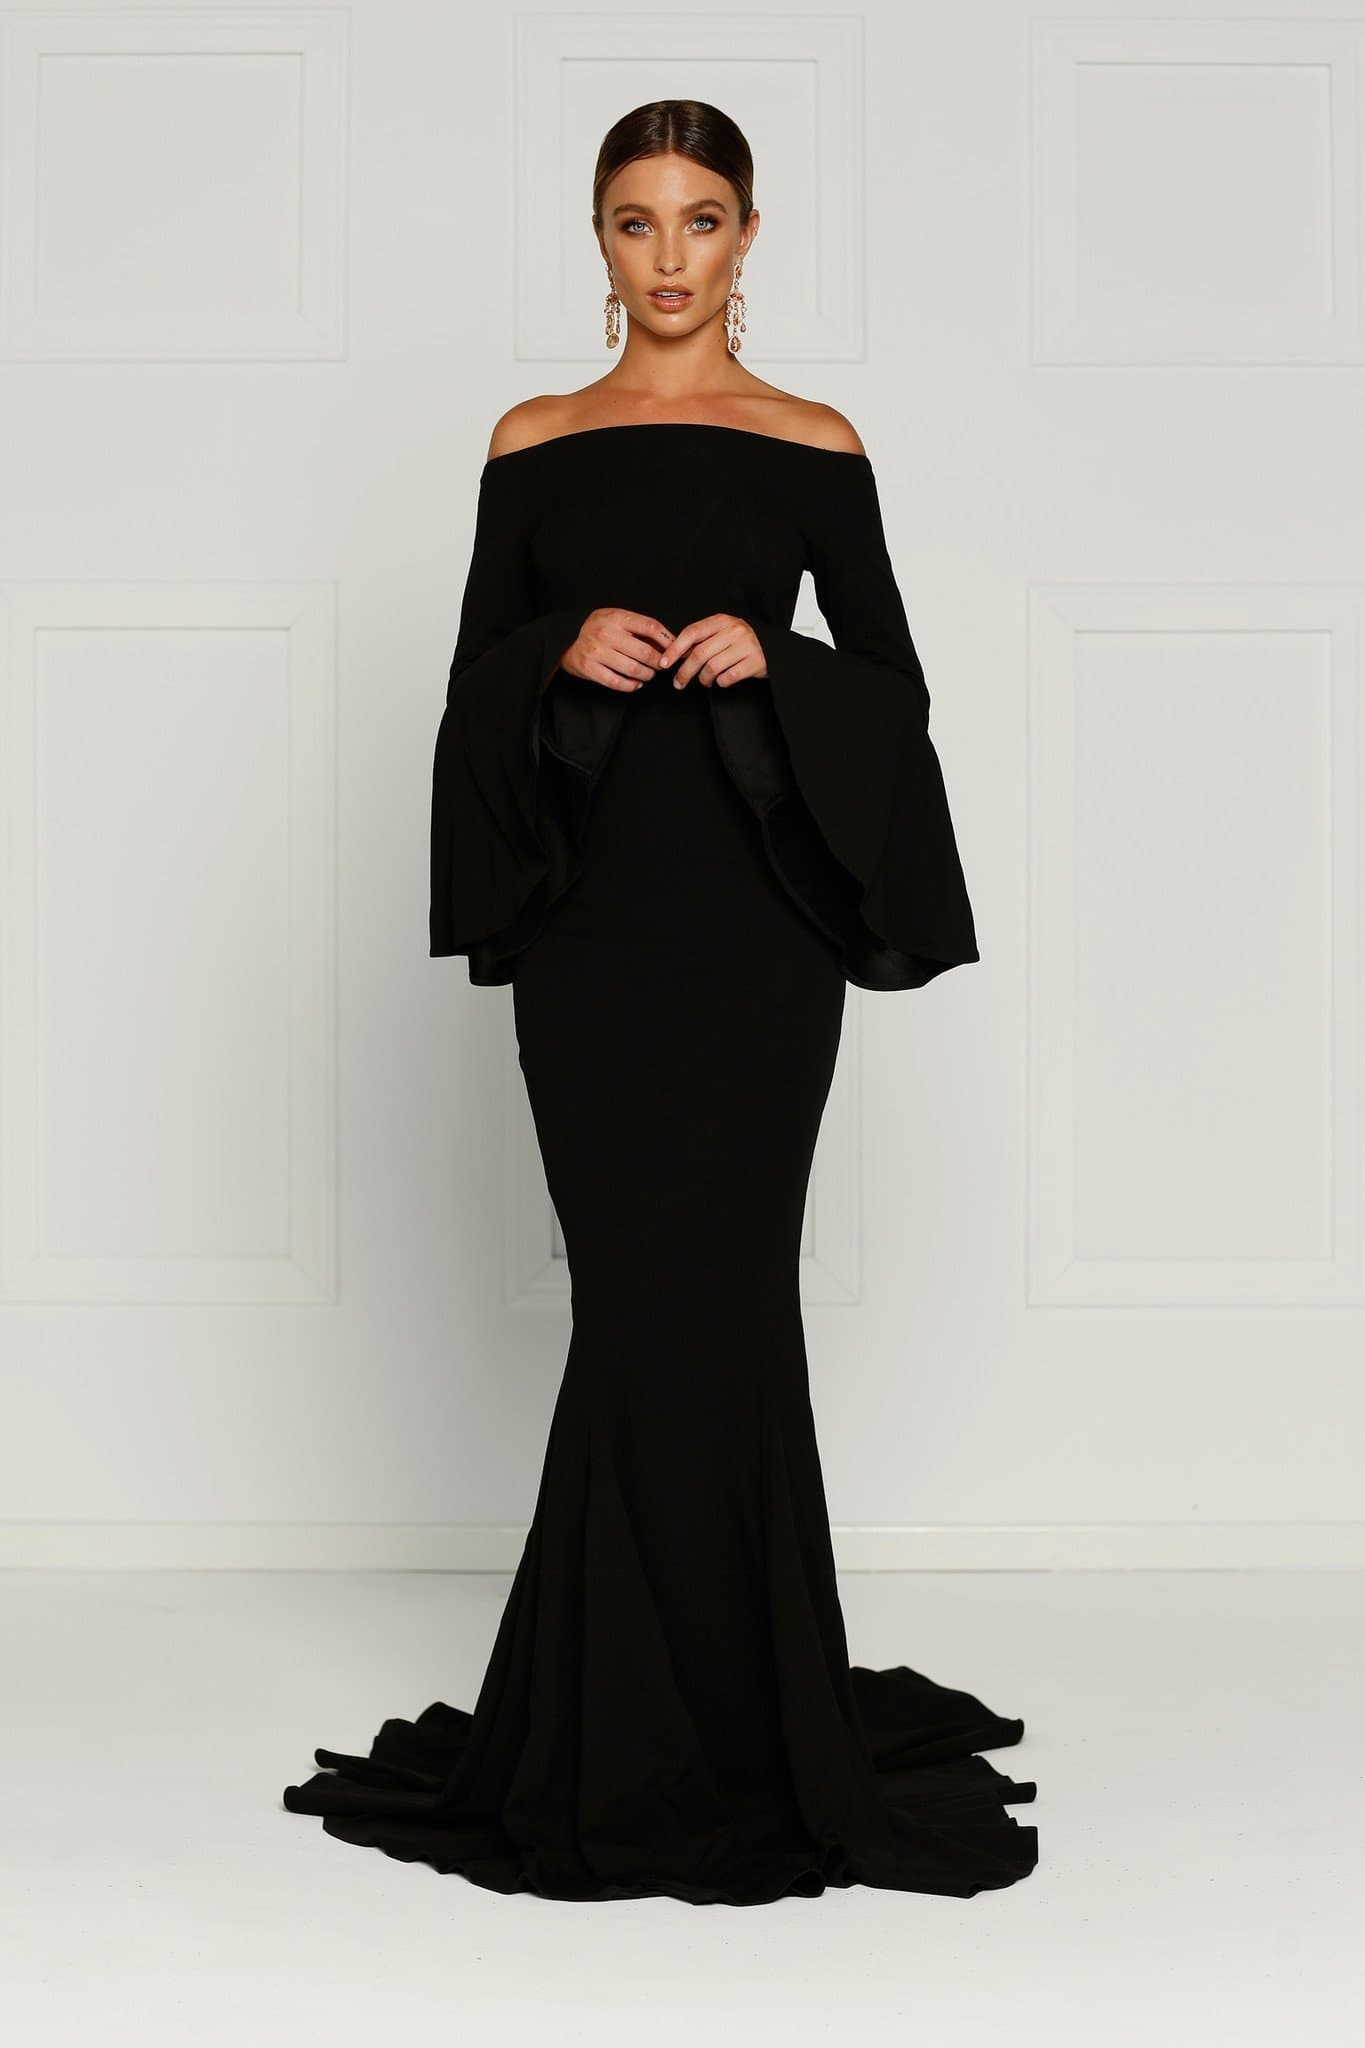 Amore - Black Off Shoulder Gown with Long Flare Sleeves